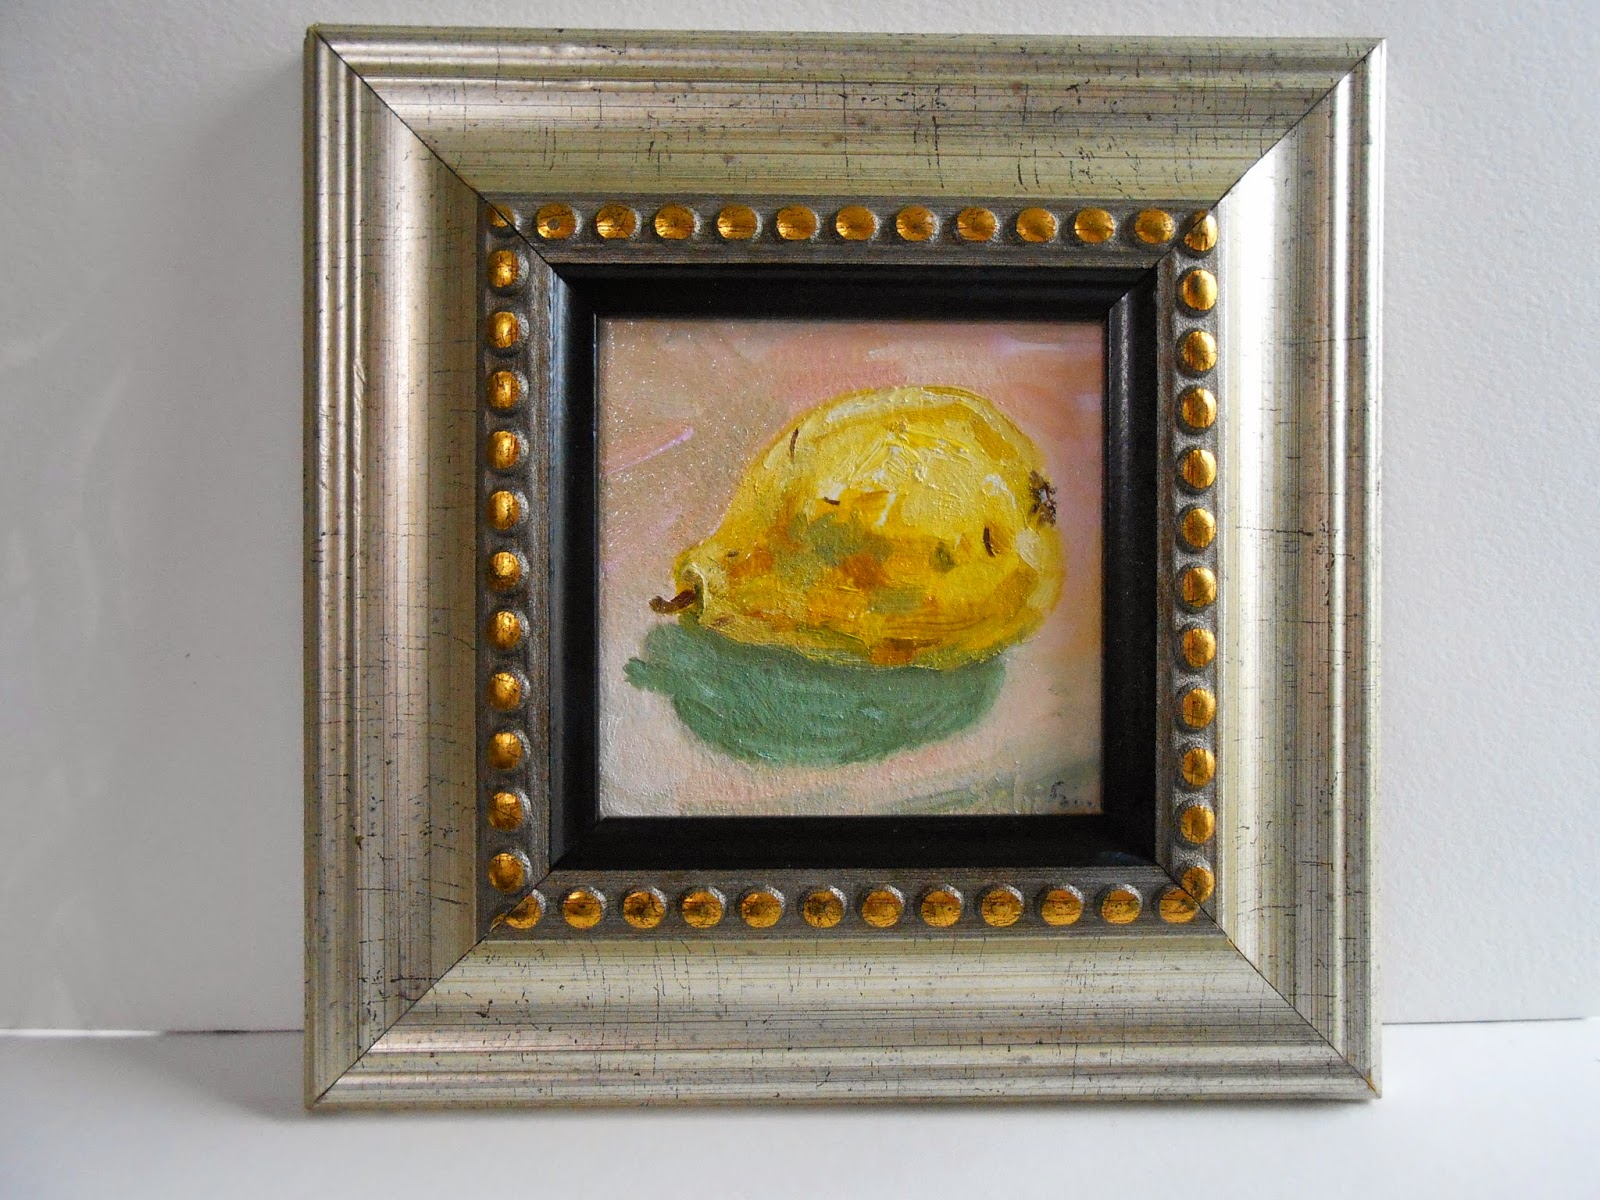 Schifano, small paintings, oil of fruit